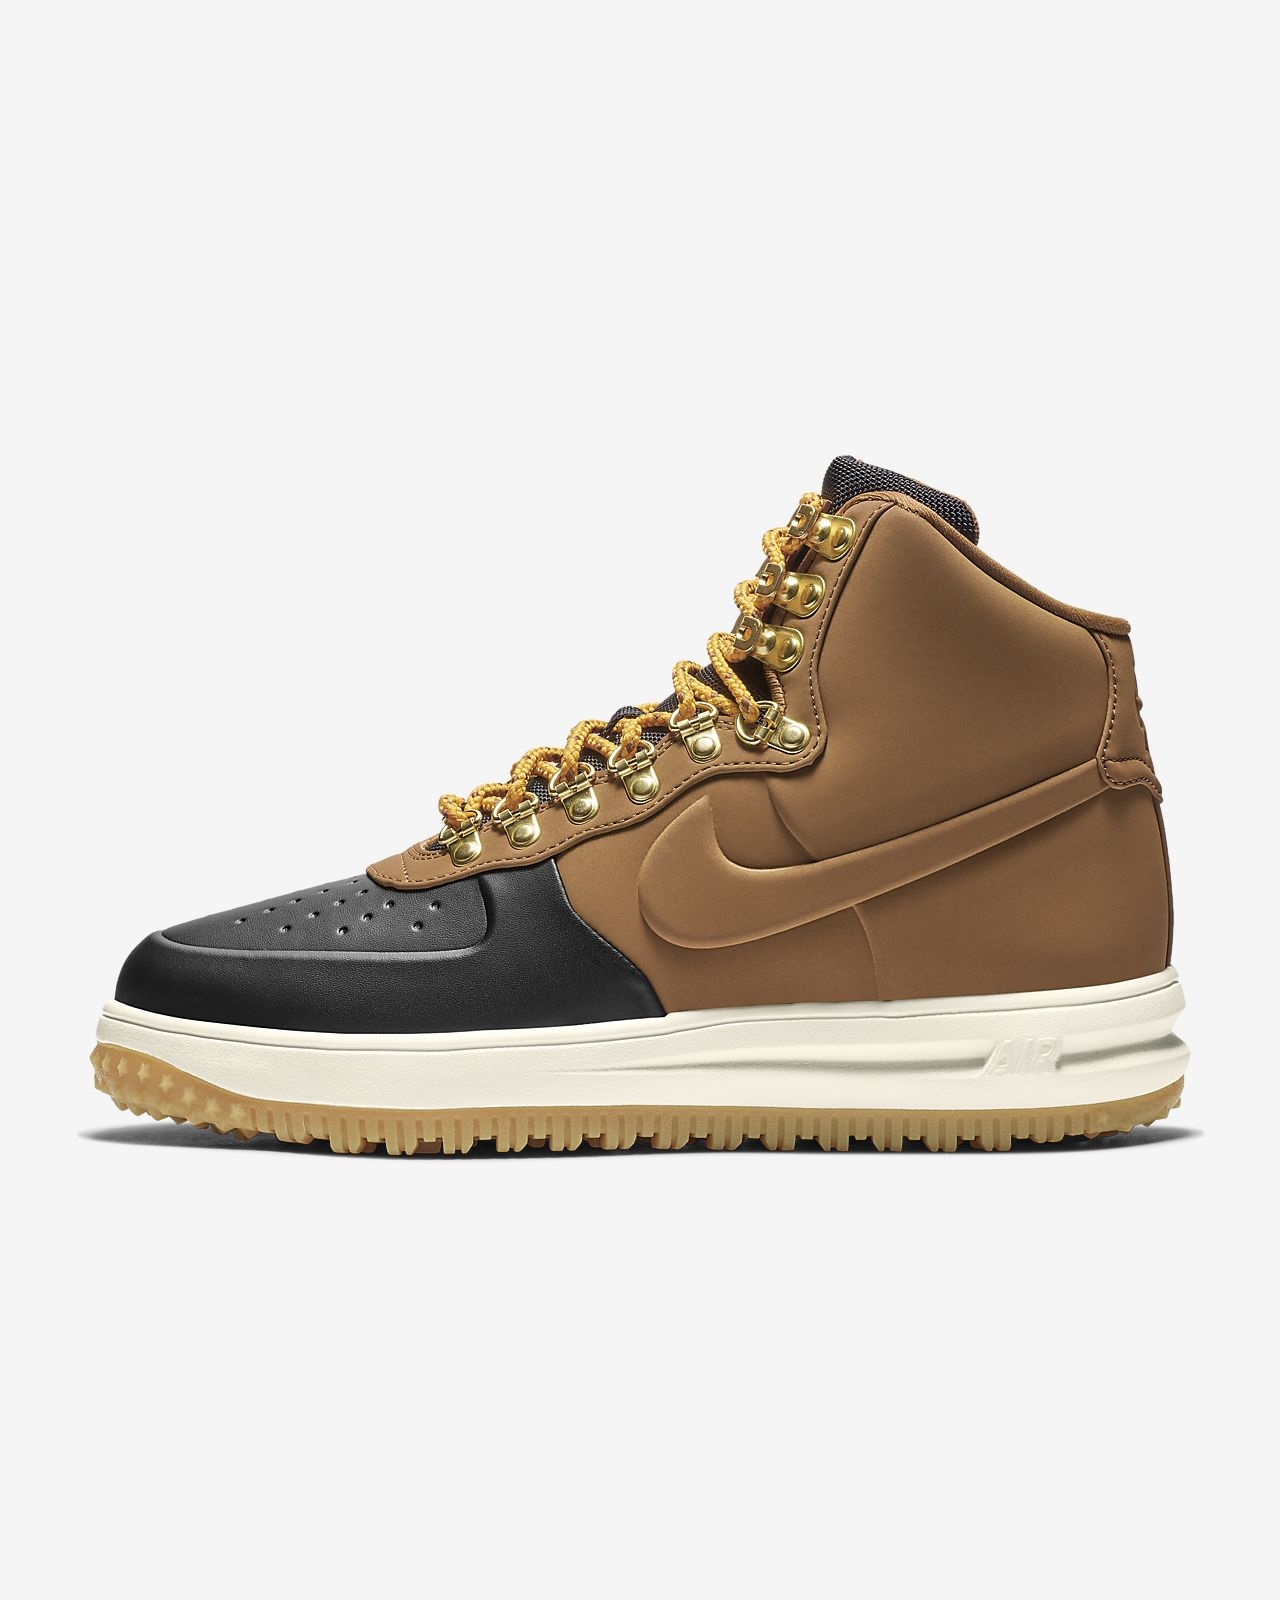 reputable site 28046 94233 ... Nike Lunar Force 1 18 Mens Duckboot